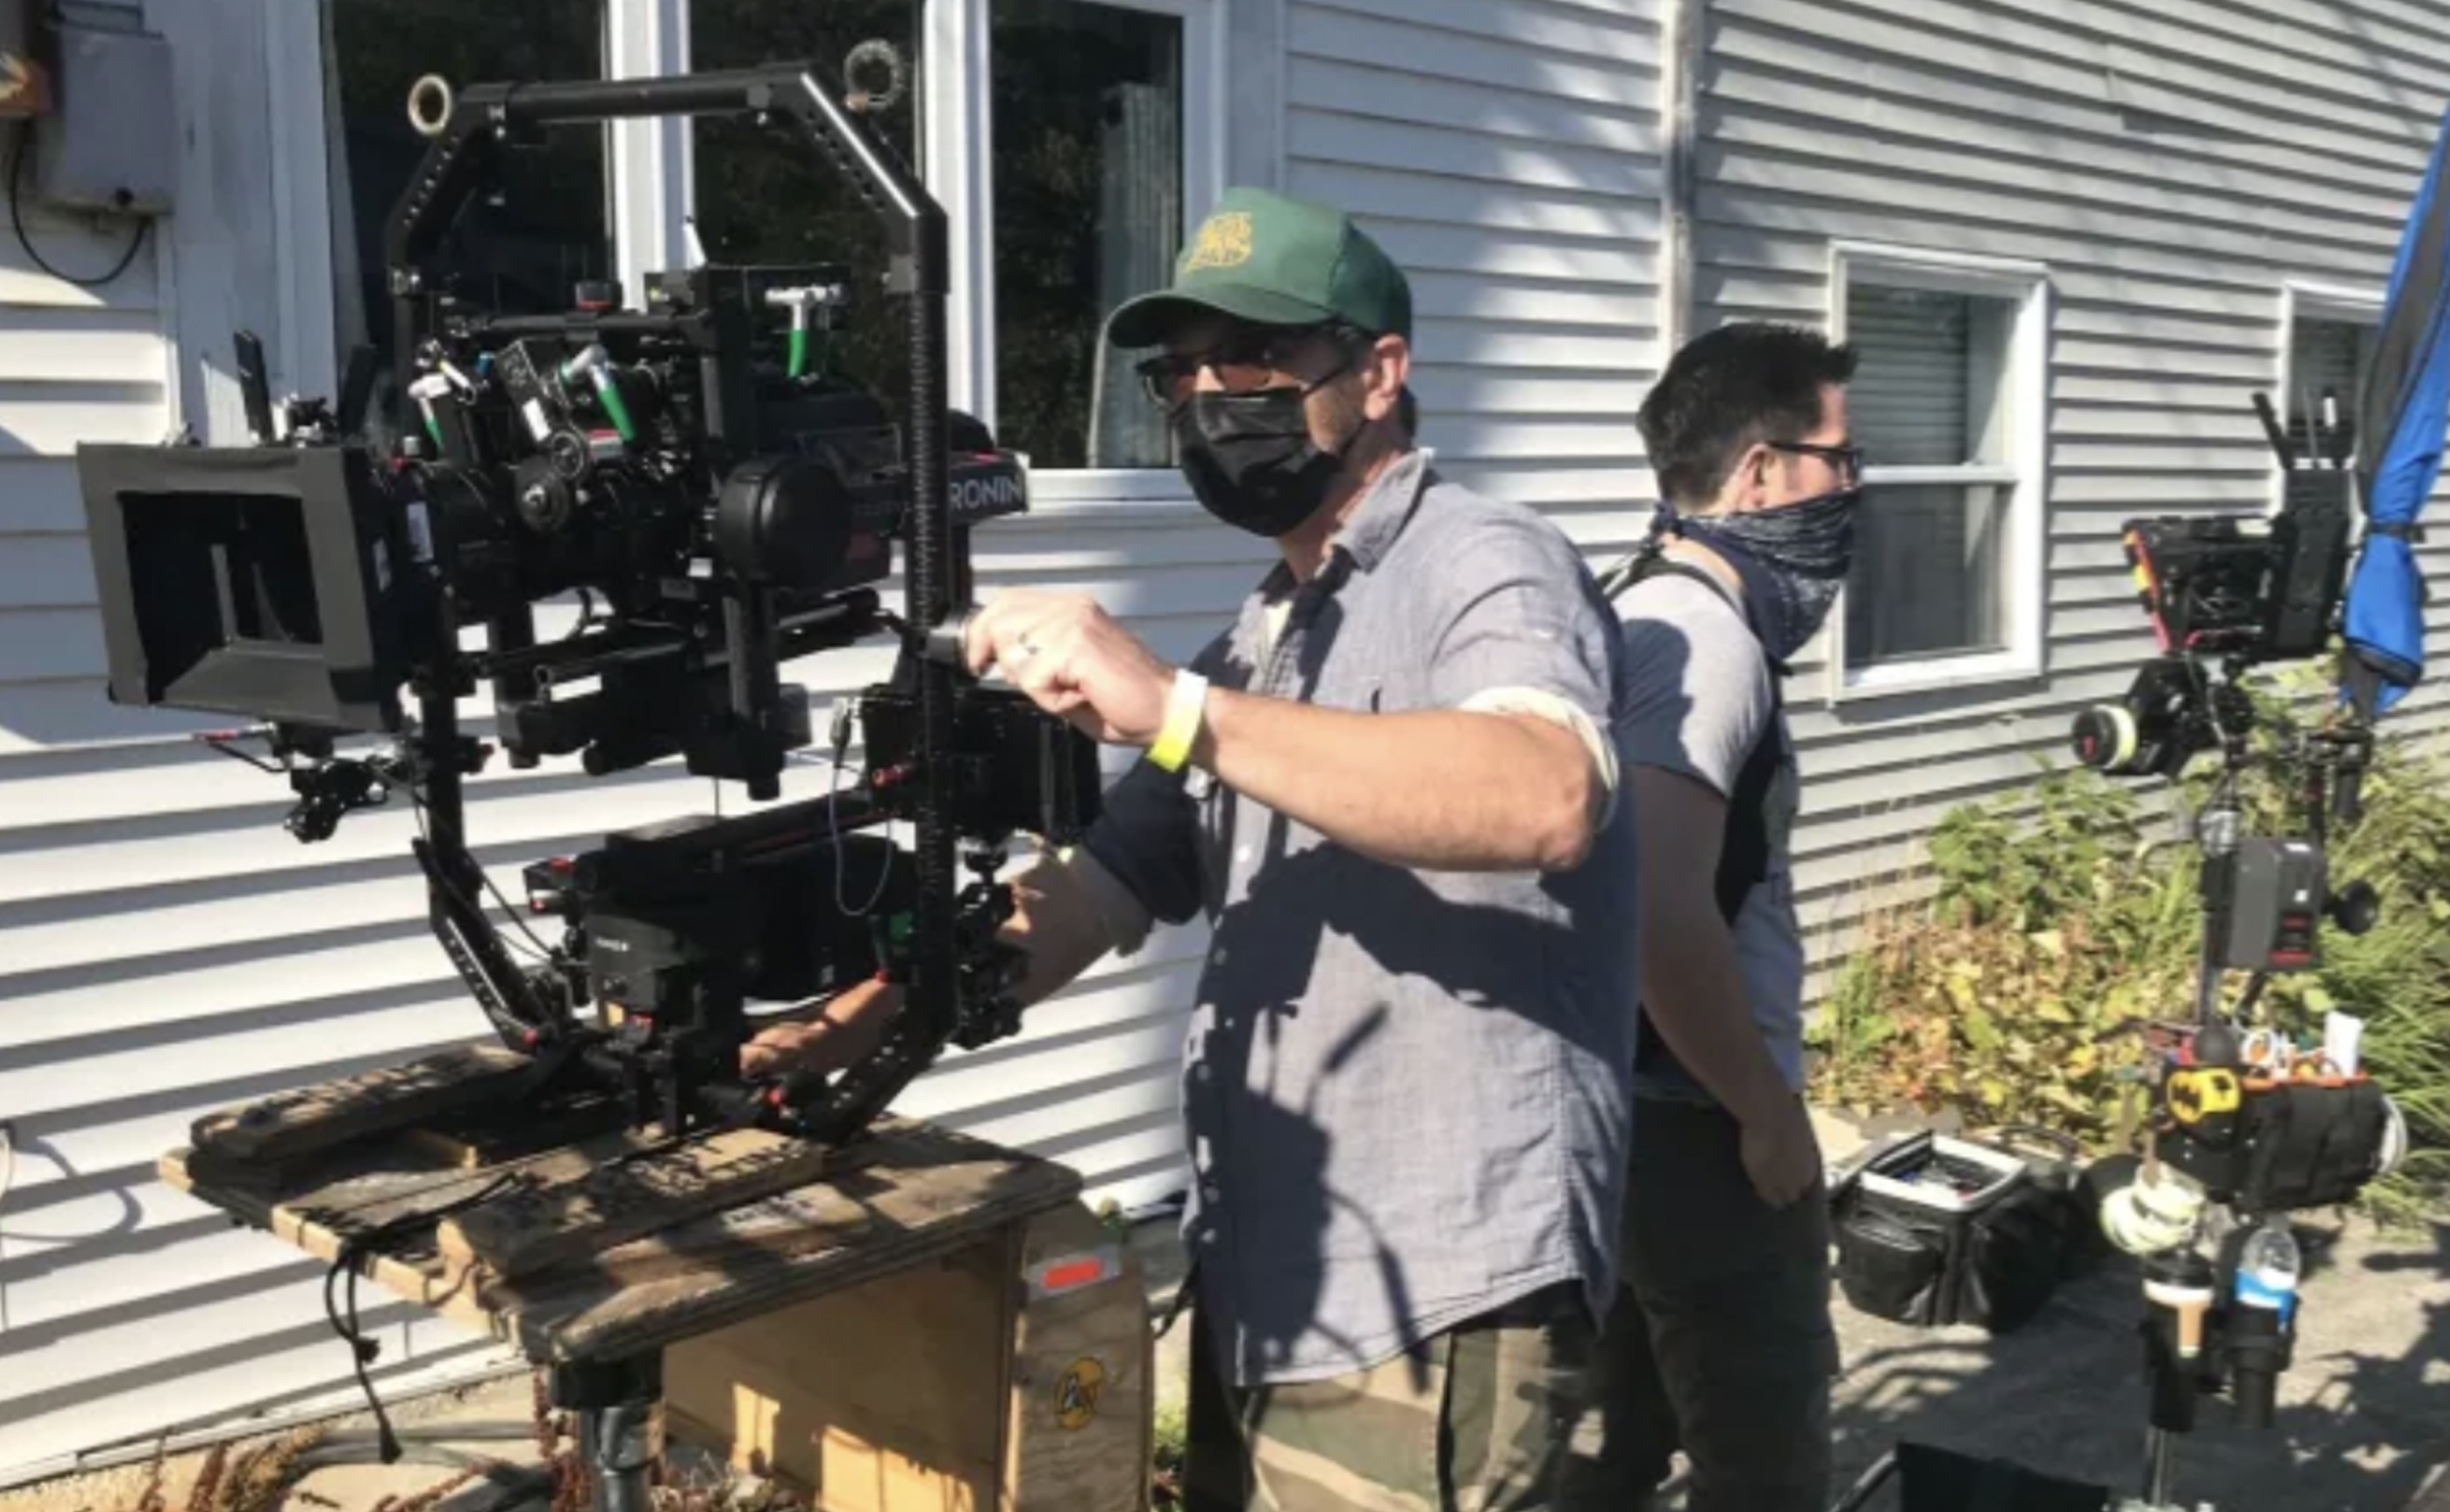 HELLO, HOLLYWOOD EAST: FILM AND TV PRODUCTIONS BOOMING IN N.L.